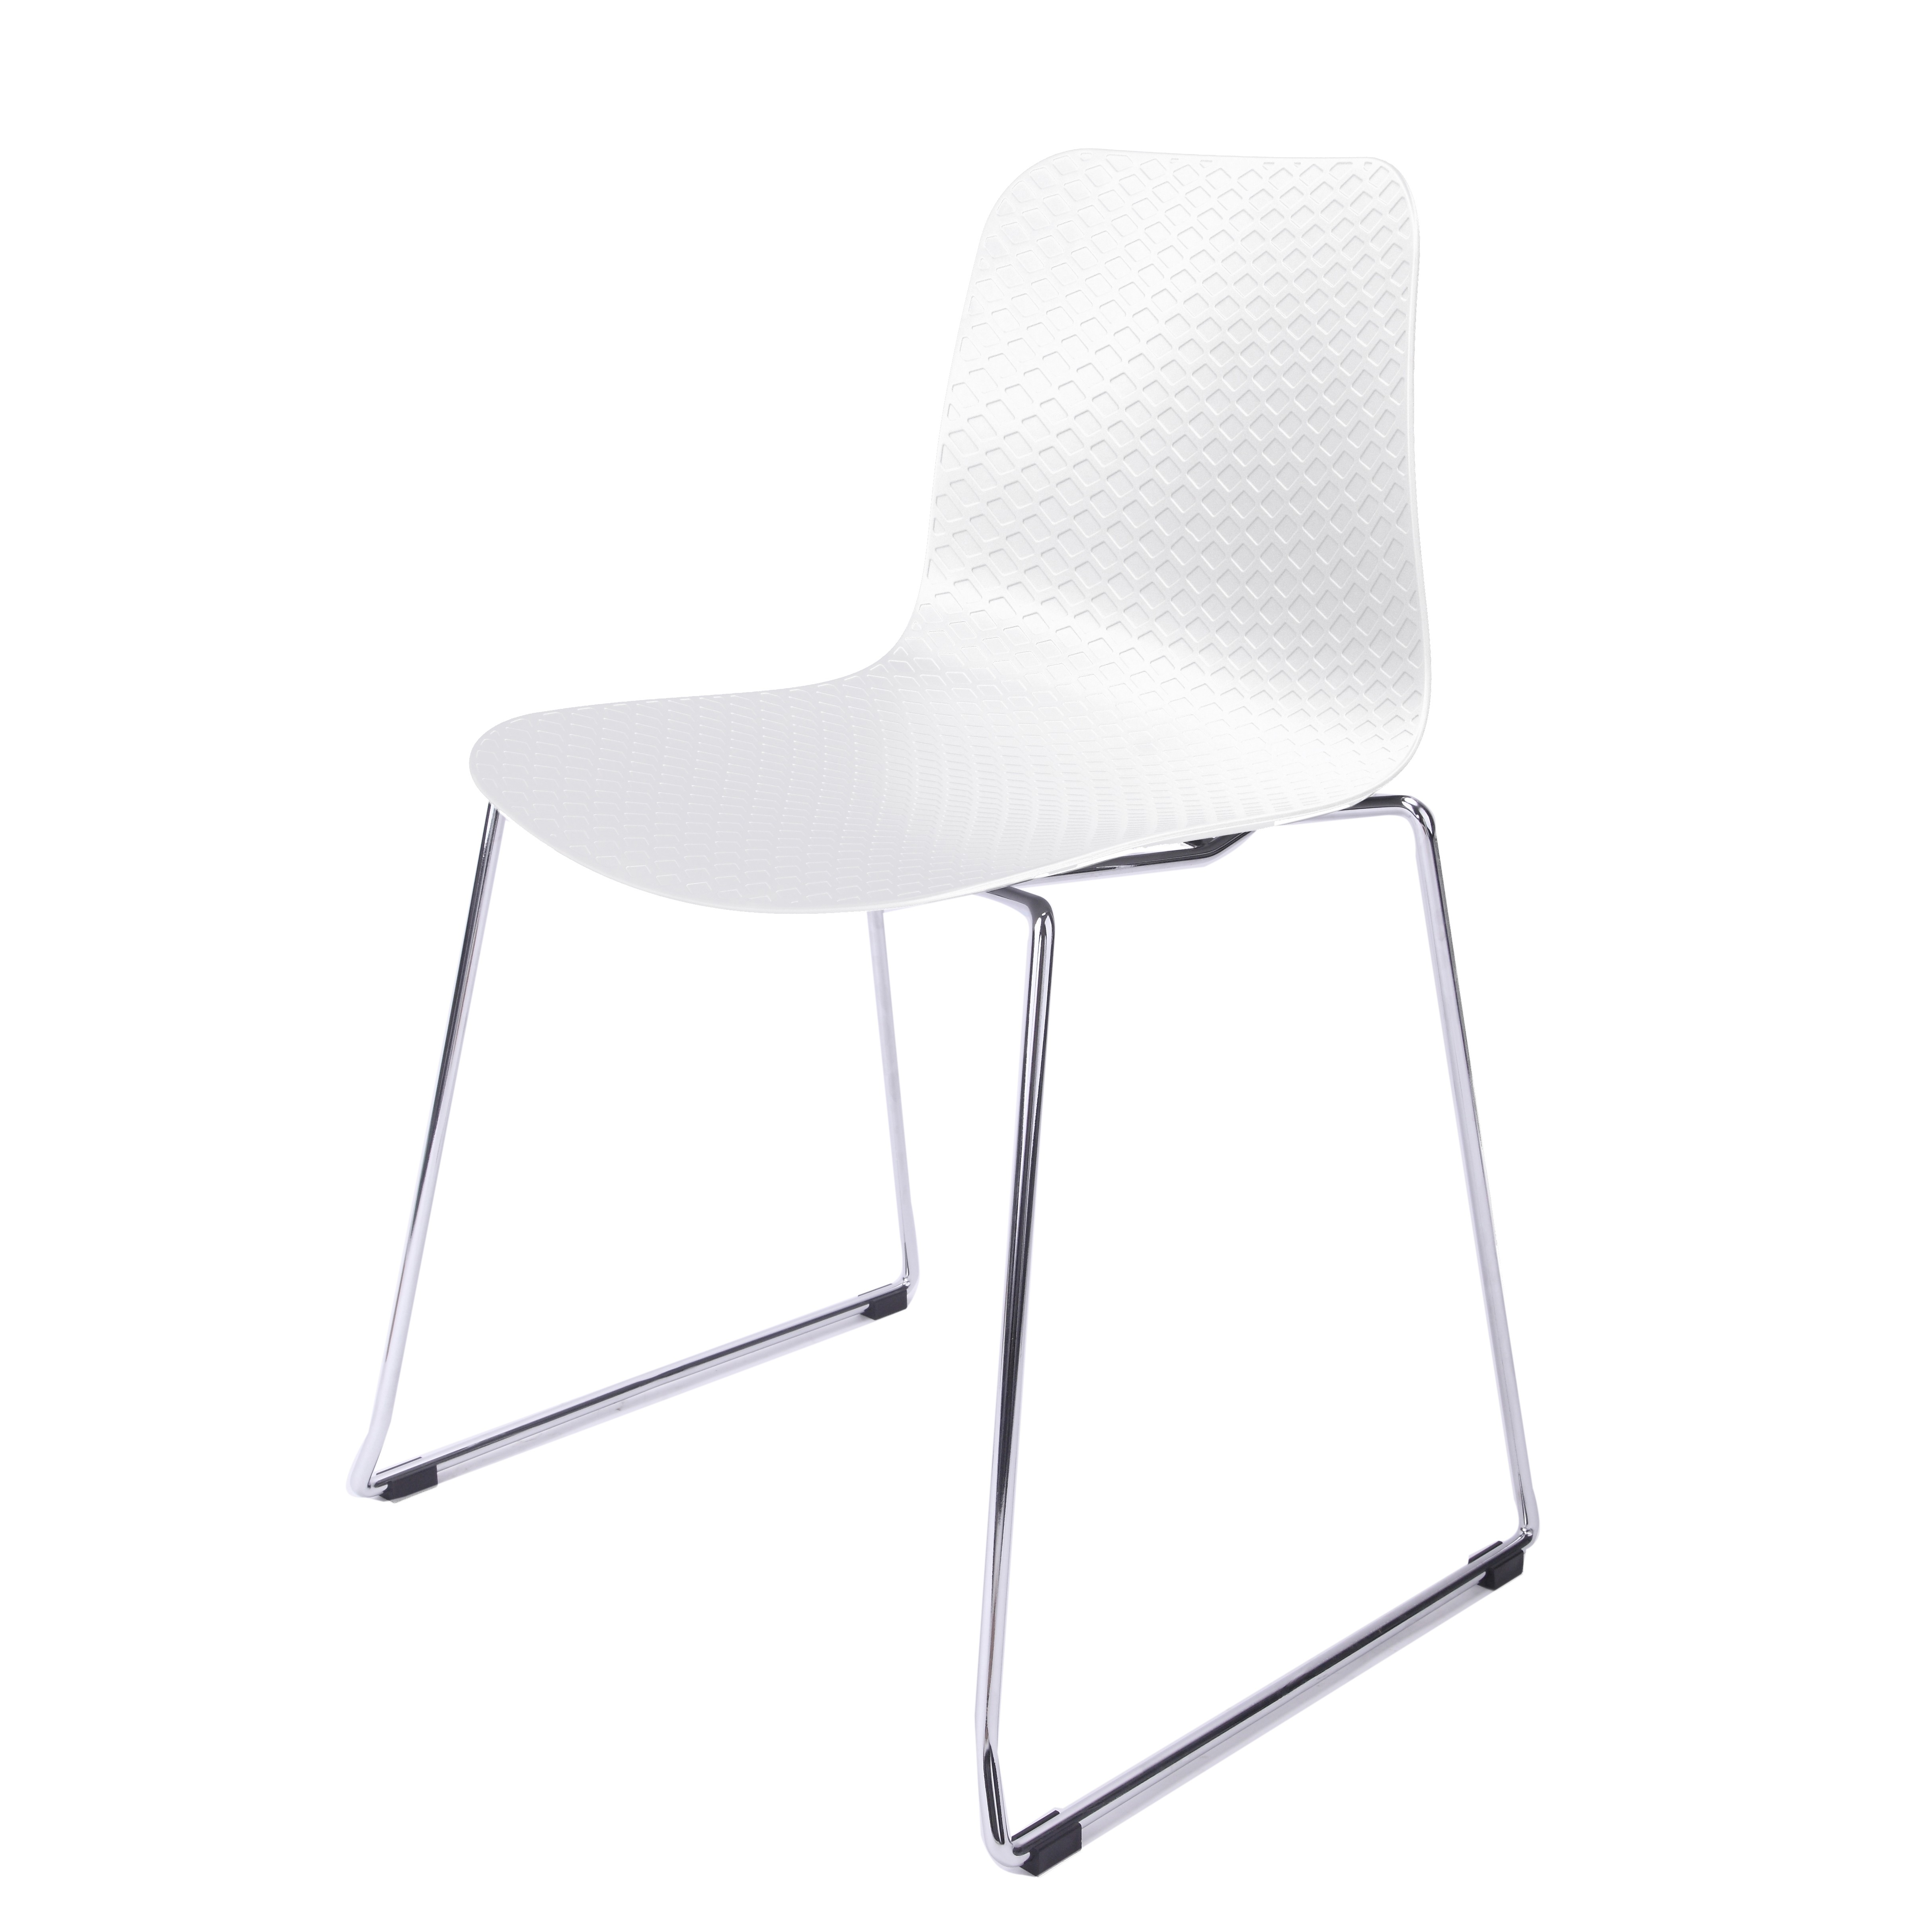 Captivating Hebe Series White Dining Shell Side Chair Molded Plastic Steel Metal Legs